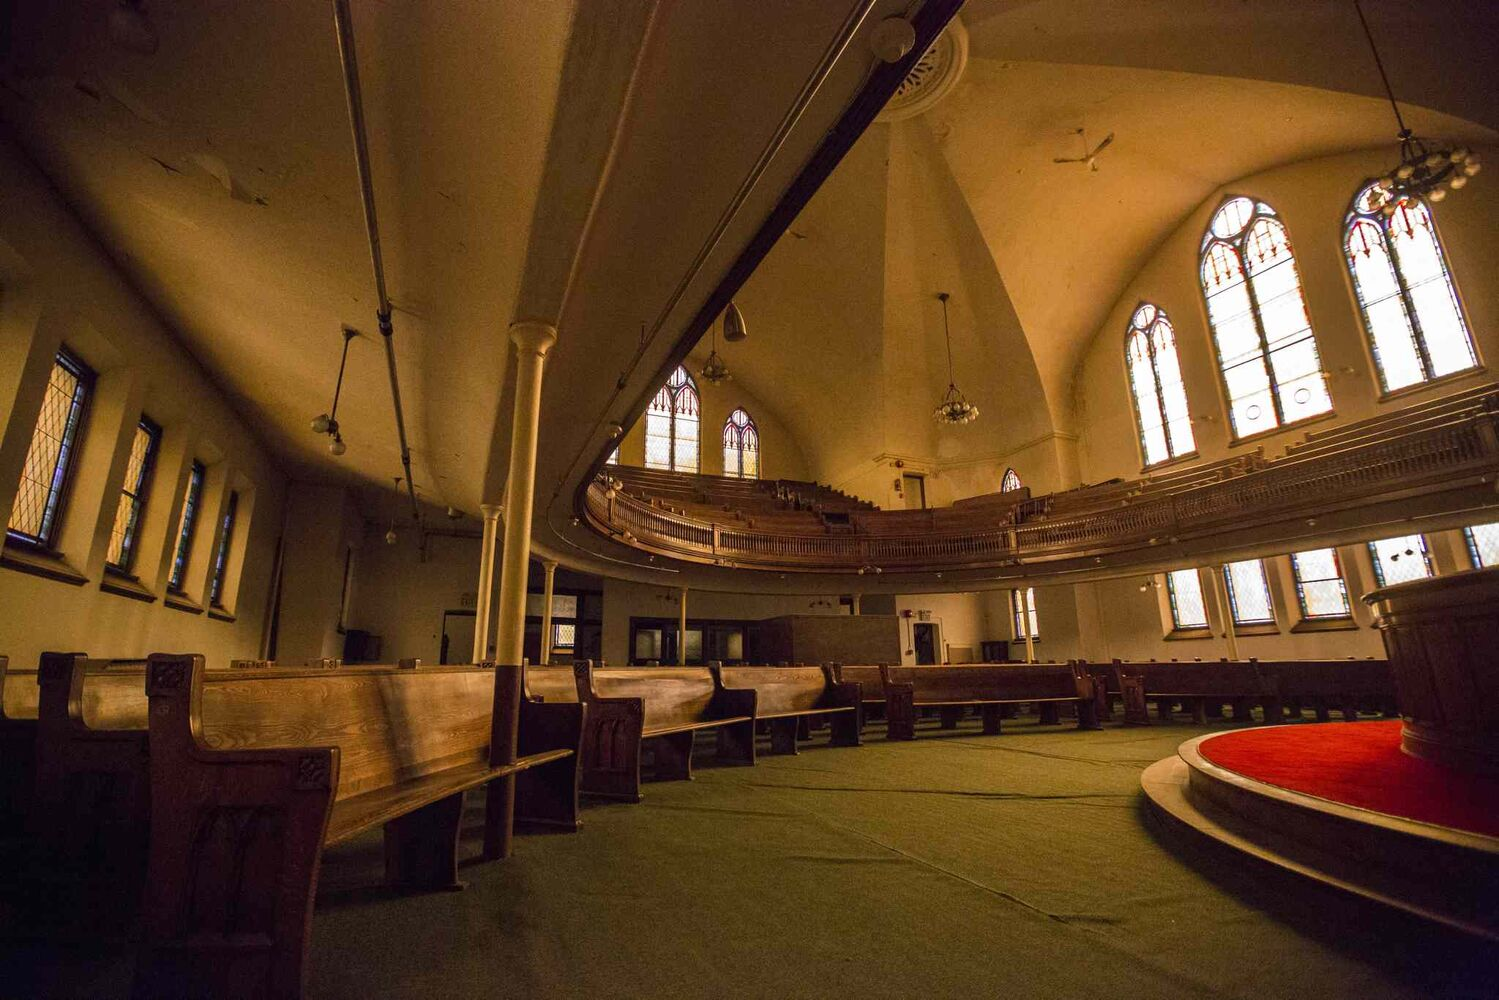 The Heritage North End Church in Winnipeg is up for sale for less than the price of a starter home on. The church, which was built in 1907, is in need of many repairs. (MIKAELA MACKENZIE / WINNIPEG FREE PRESS)